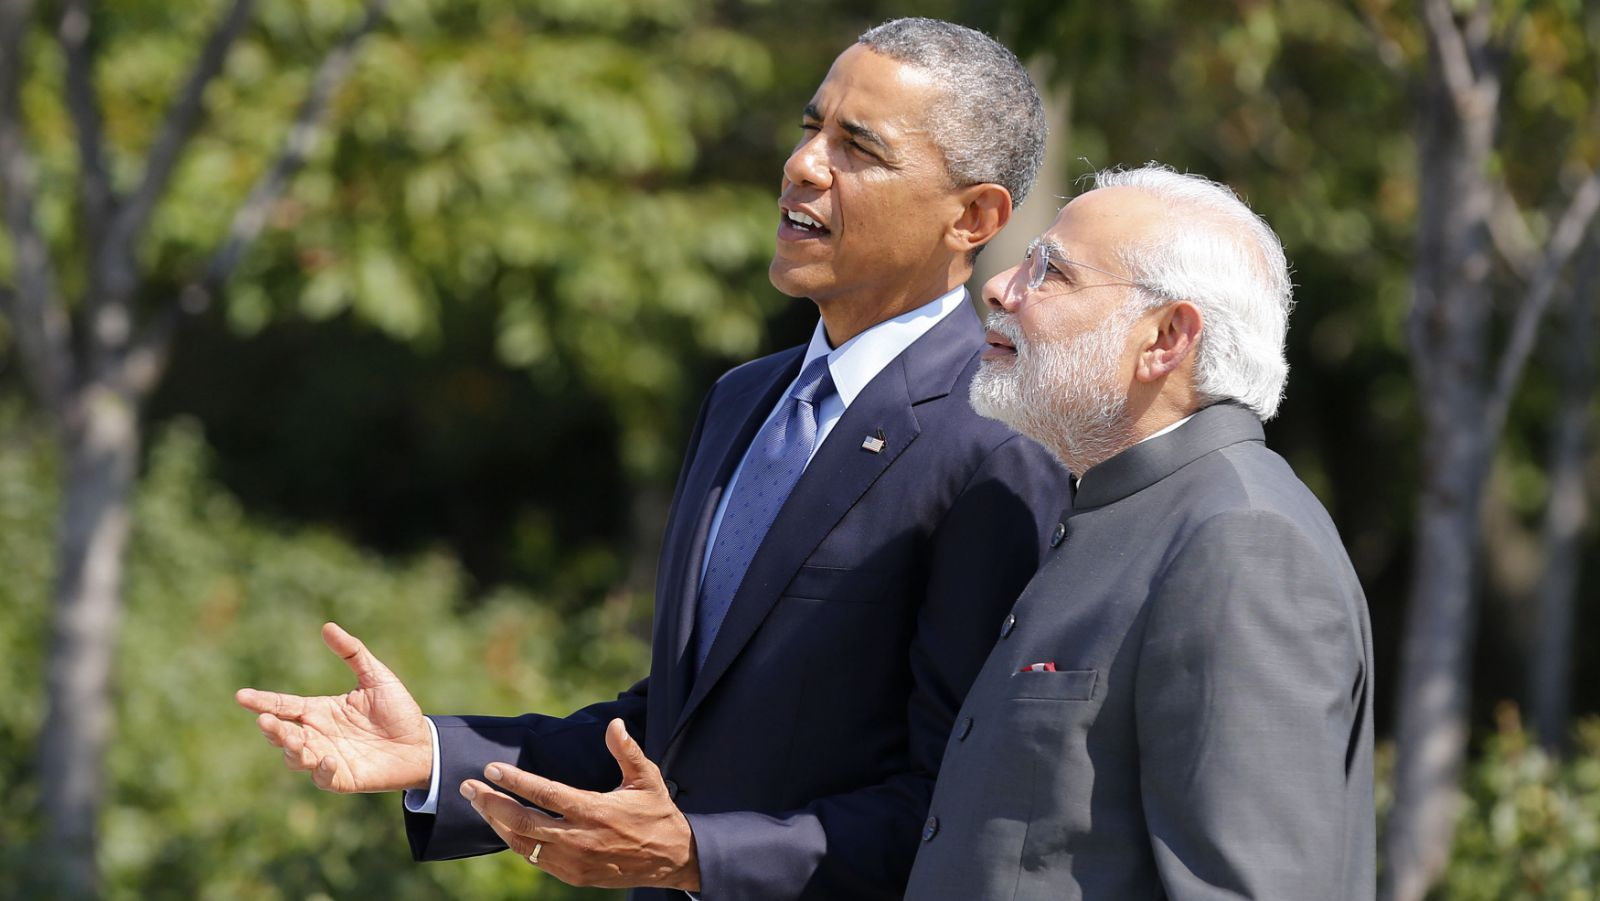 U.S. President Barack Obama and India's Prime Minister Narendra Modi talk at the National Martin Luther King Memorial on the National Mall in Washington September 30, 2014.